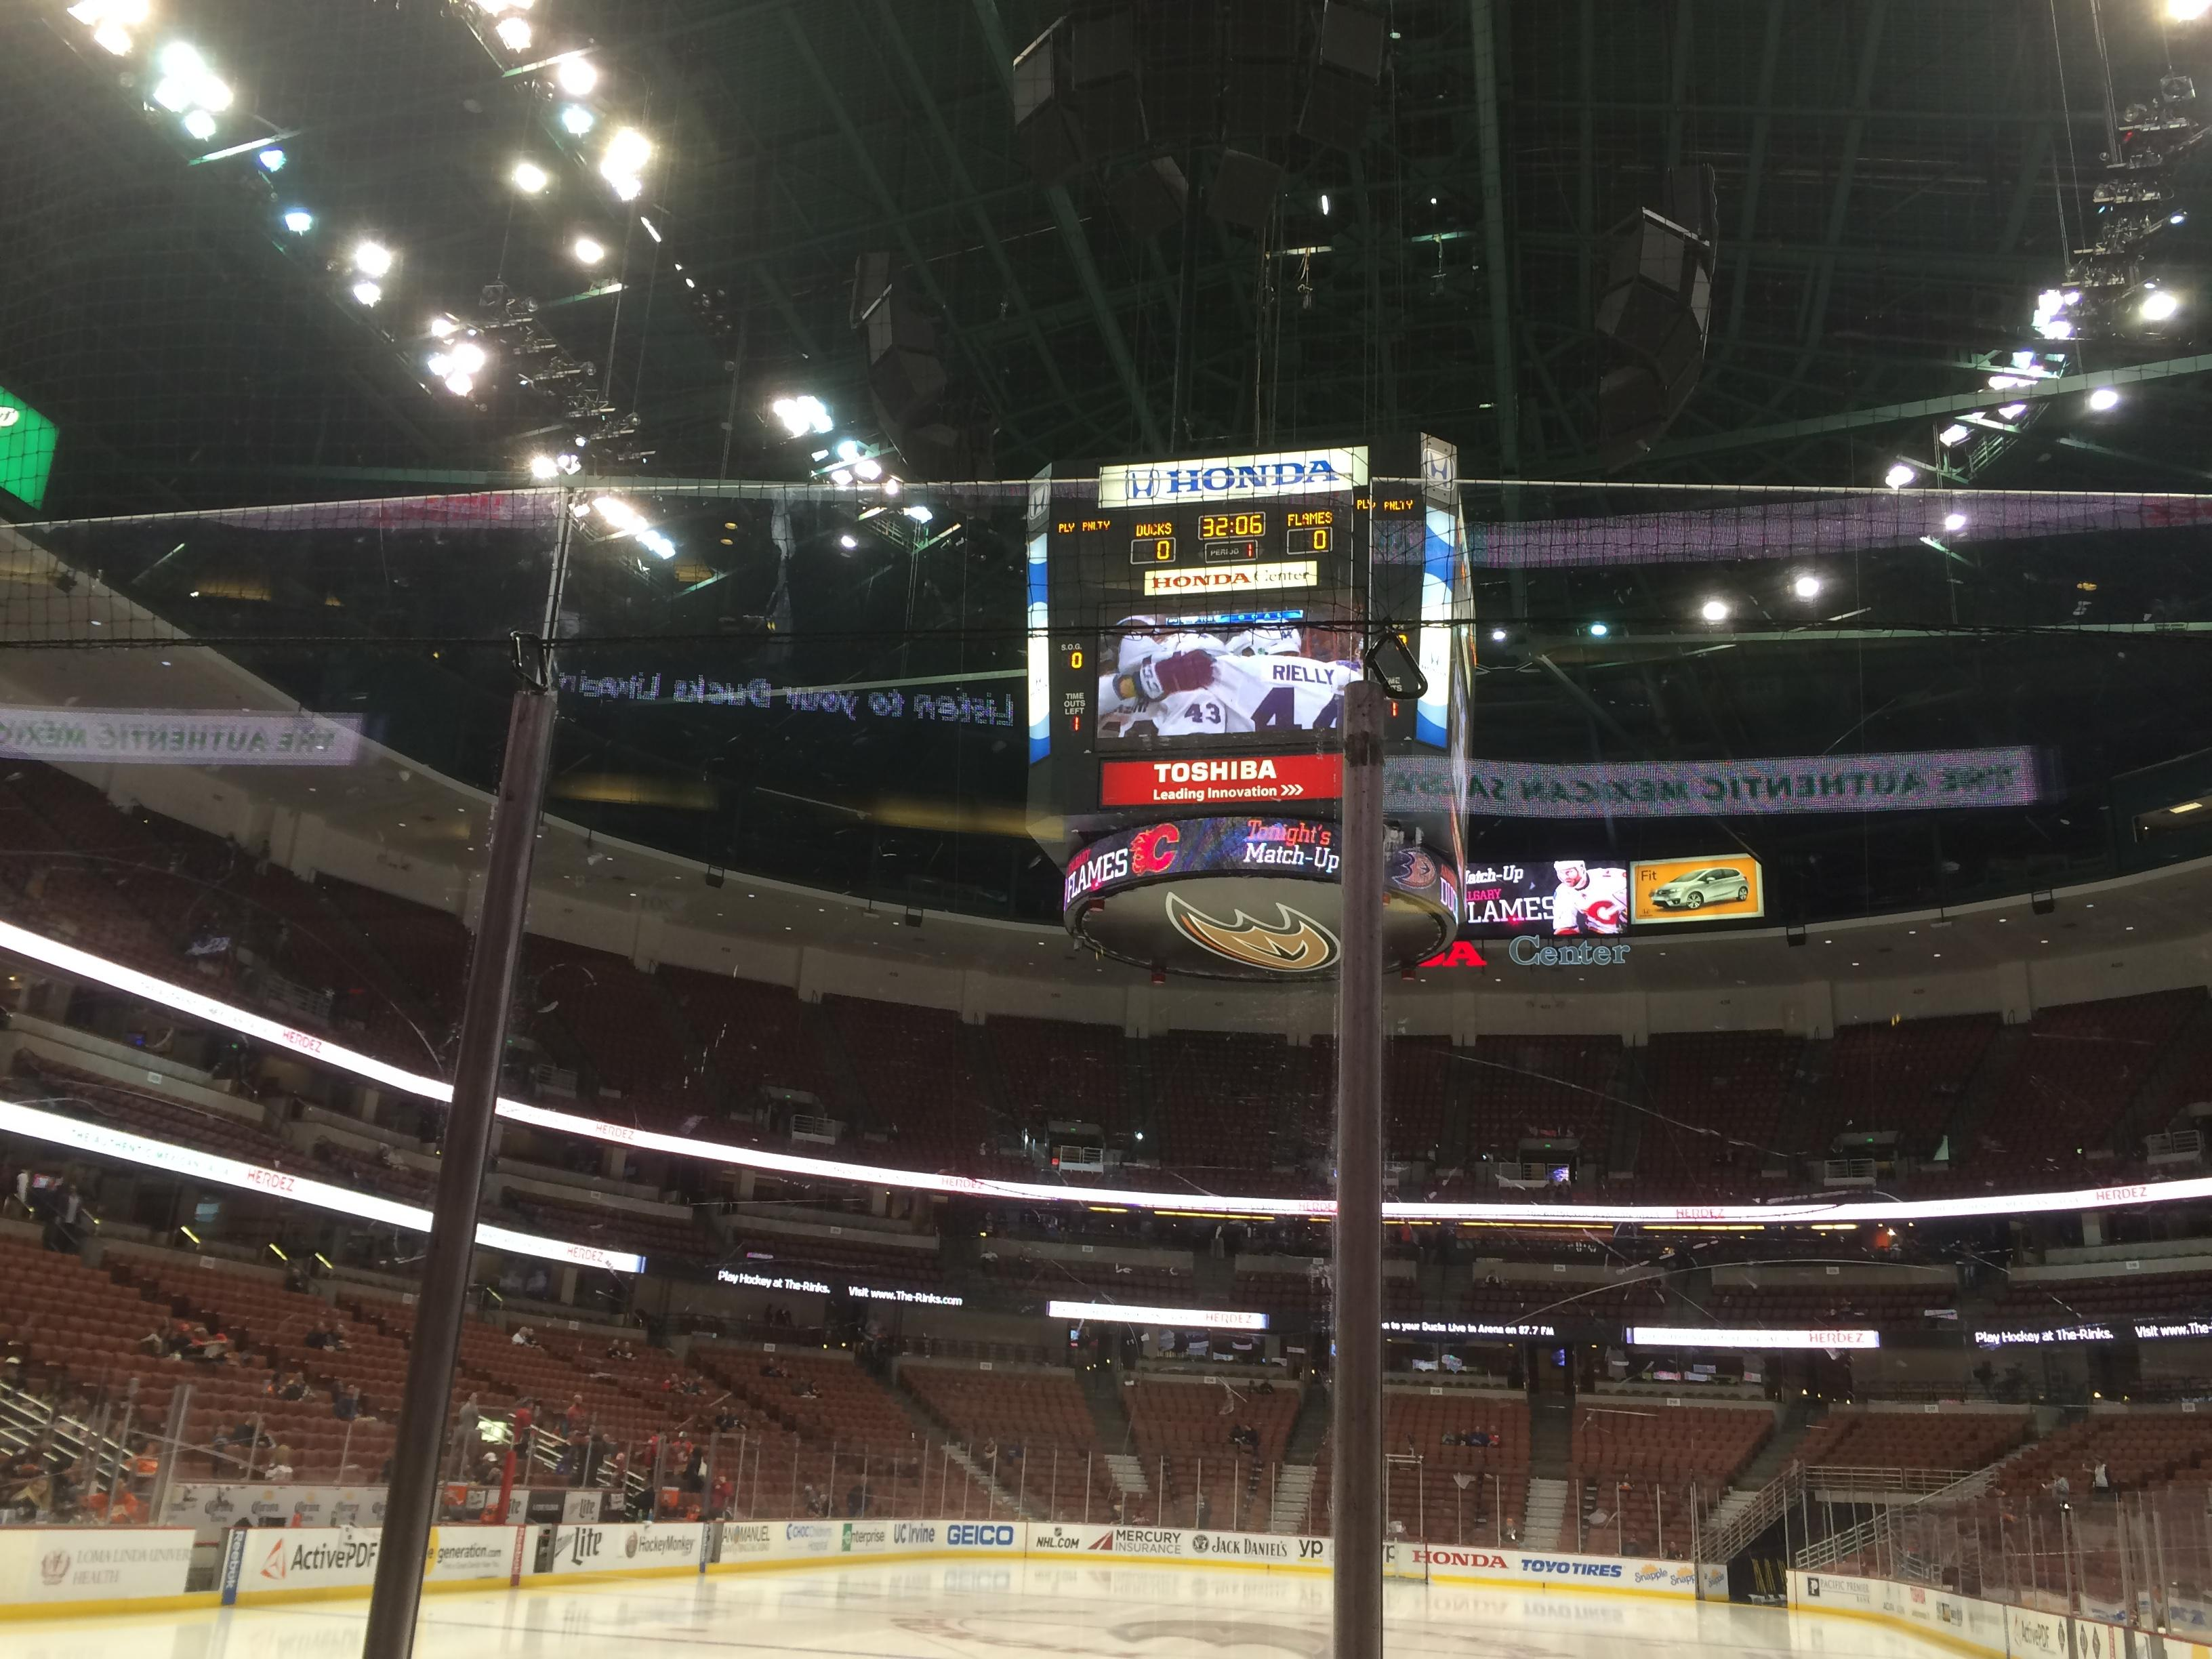 Honda Center Section 228 Row B Seat 2